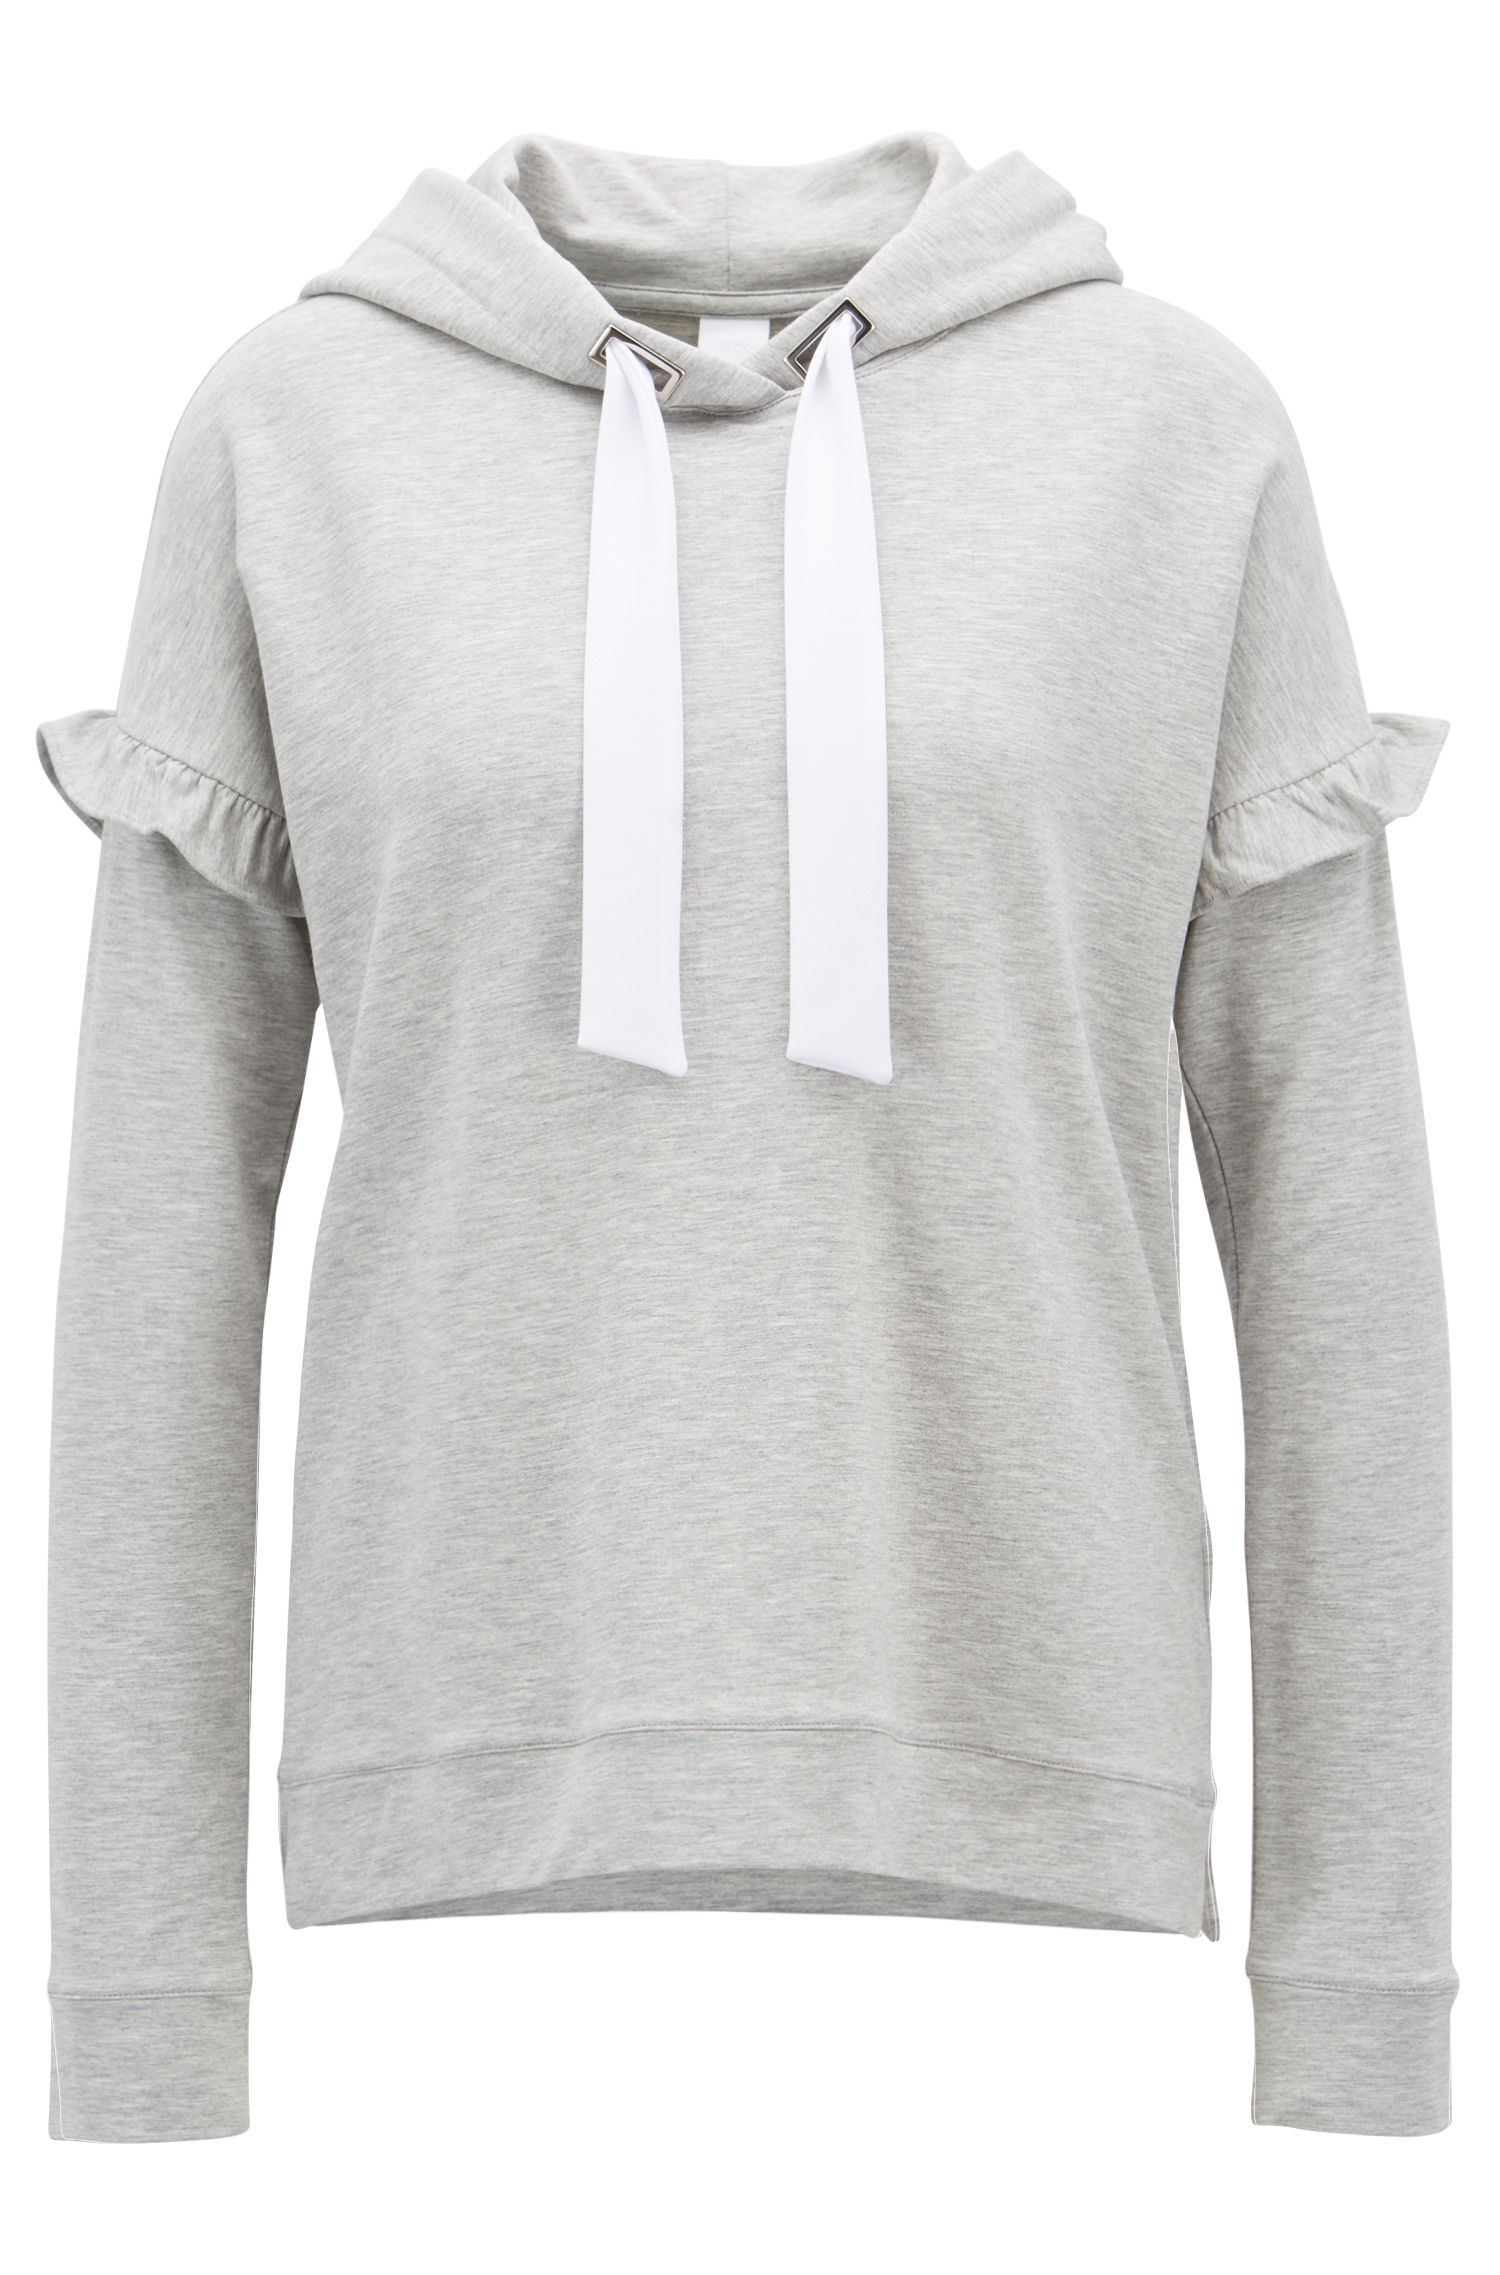 French-terry hooded sweatshirt with ruffle detail, Light Grey